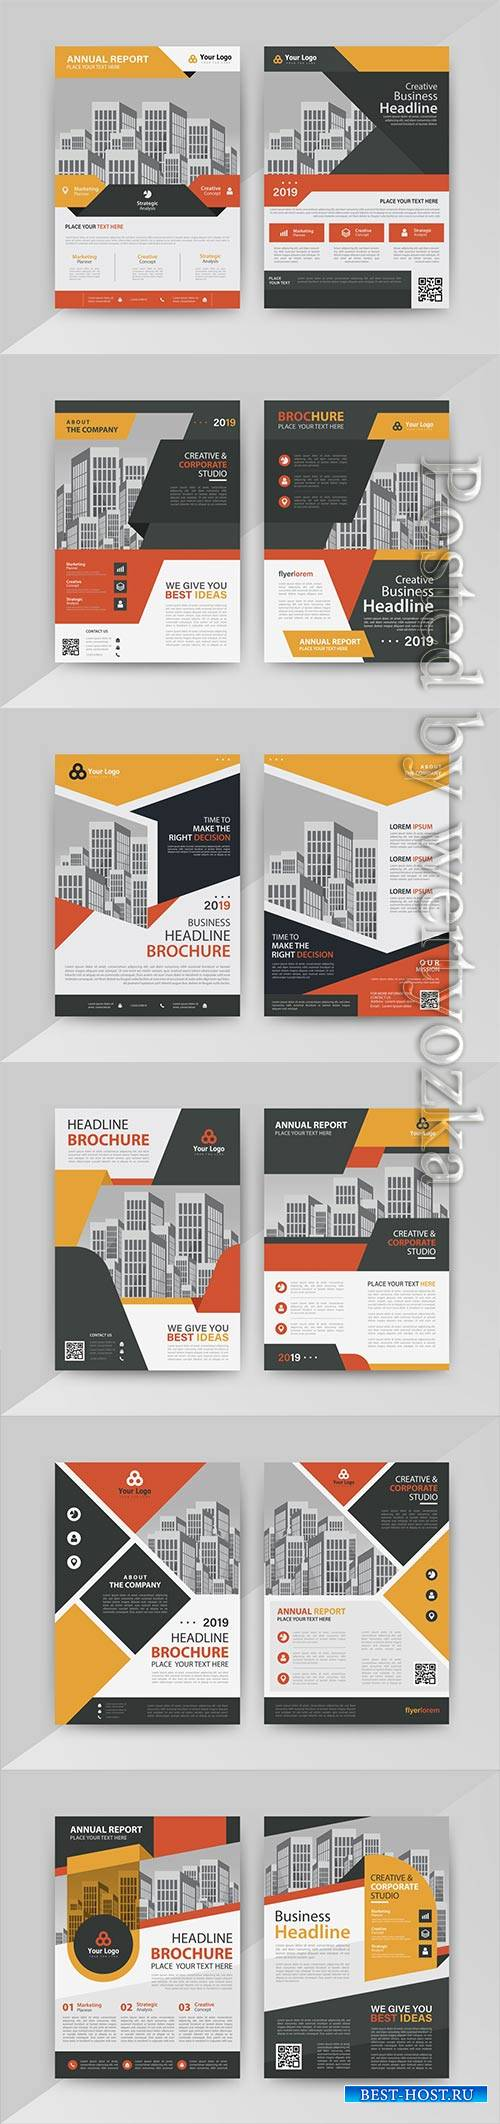 Business vector template for brochure, annual report, magazine # 23